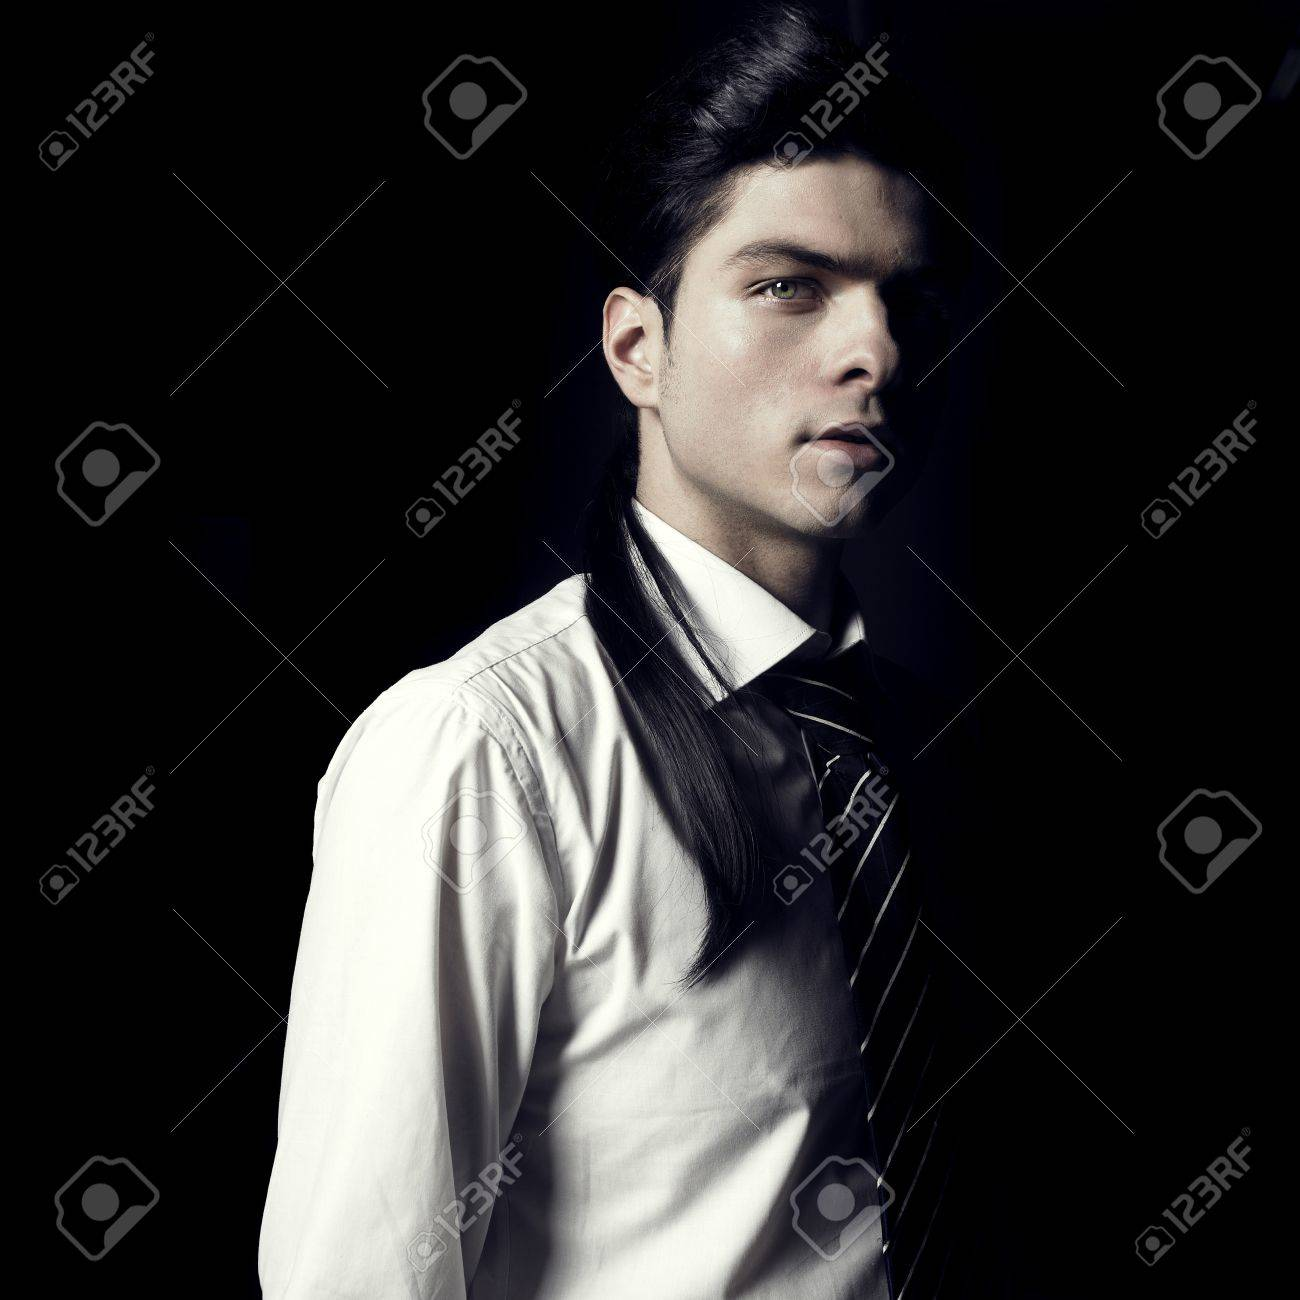 Portrait of handsome stylish men looking out of the darkness Stock Photo - 8479000